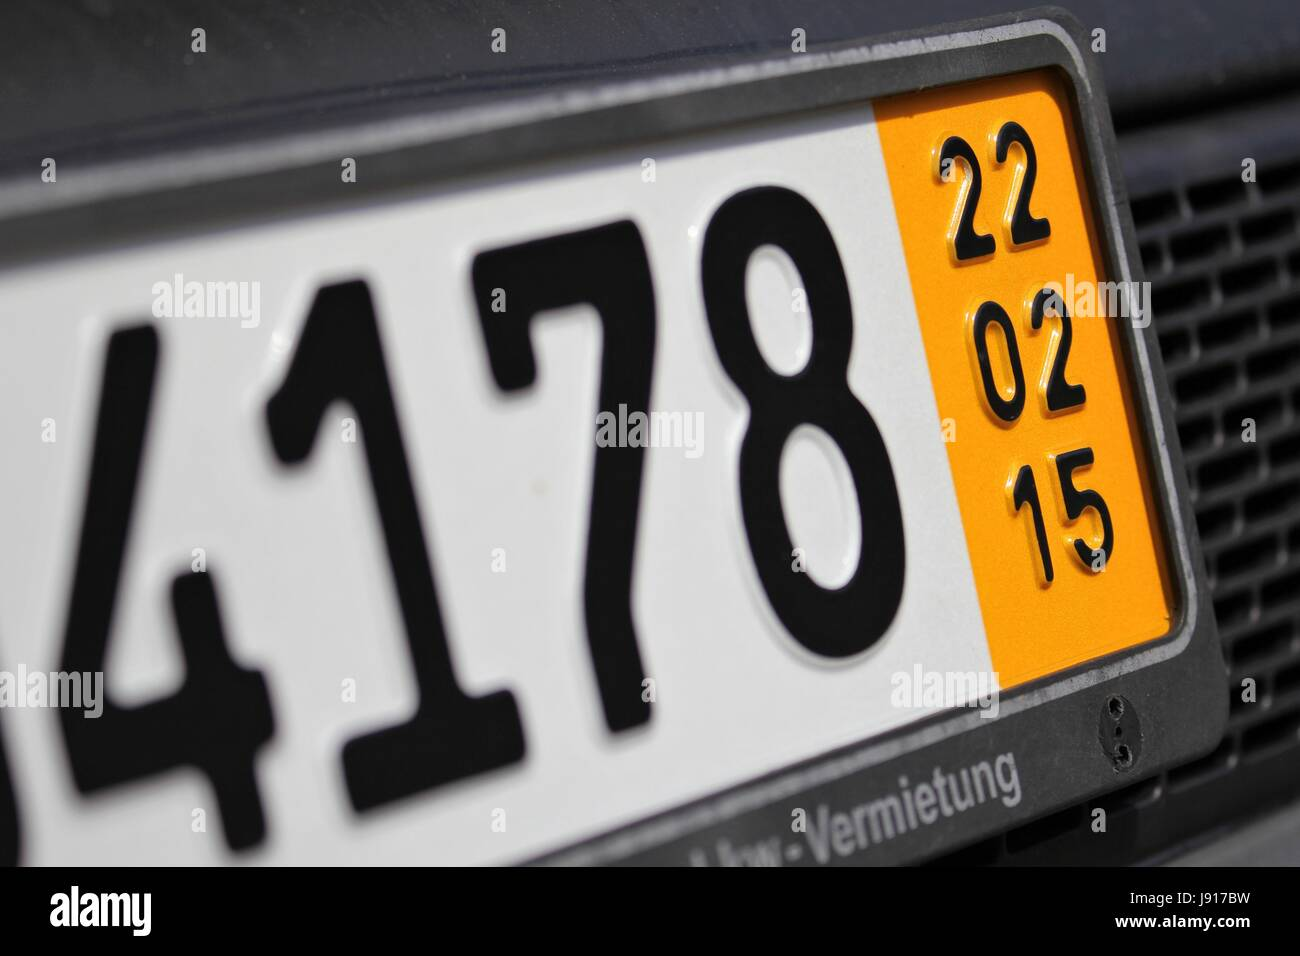 Dating car registration numbers